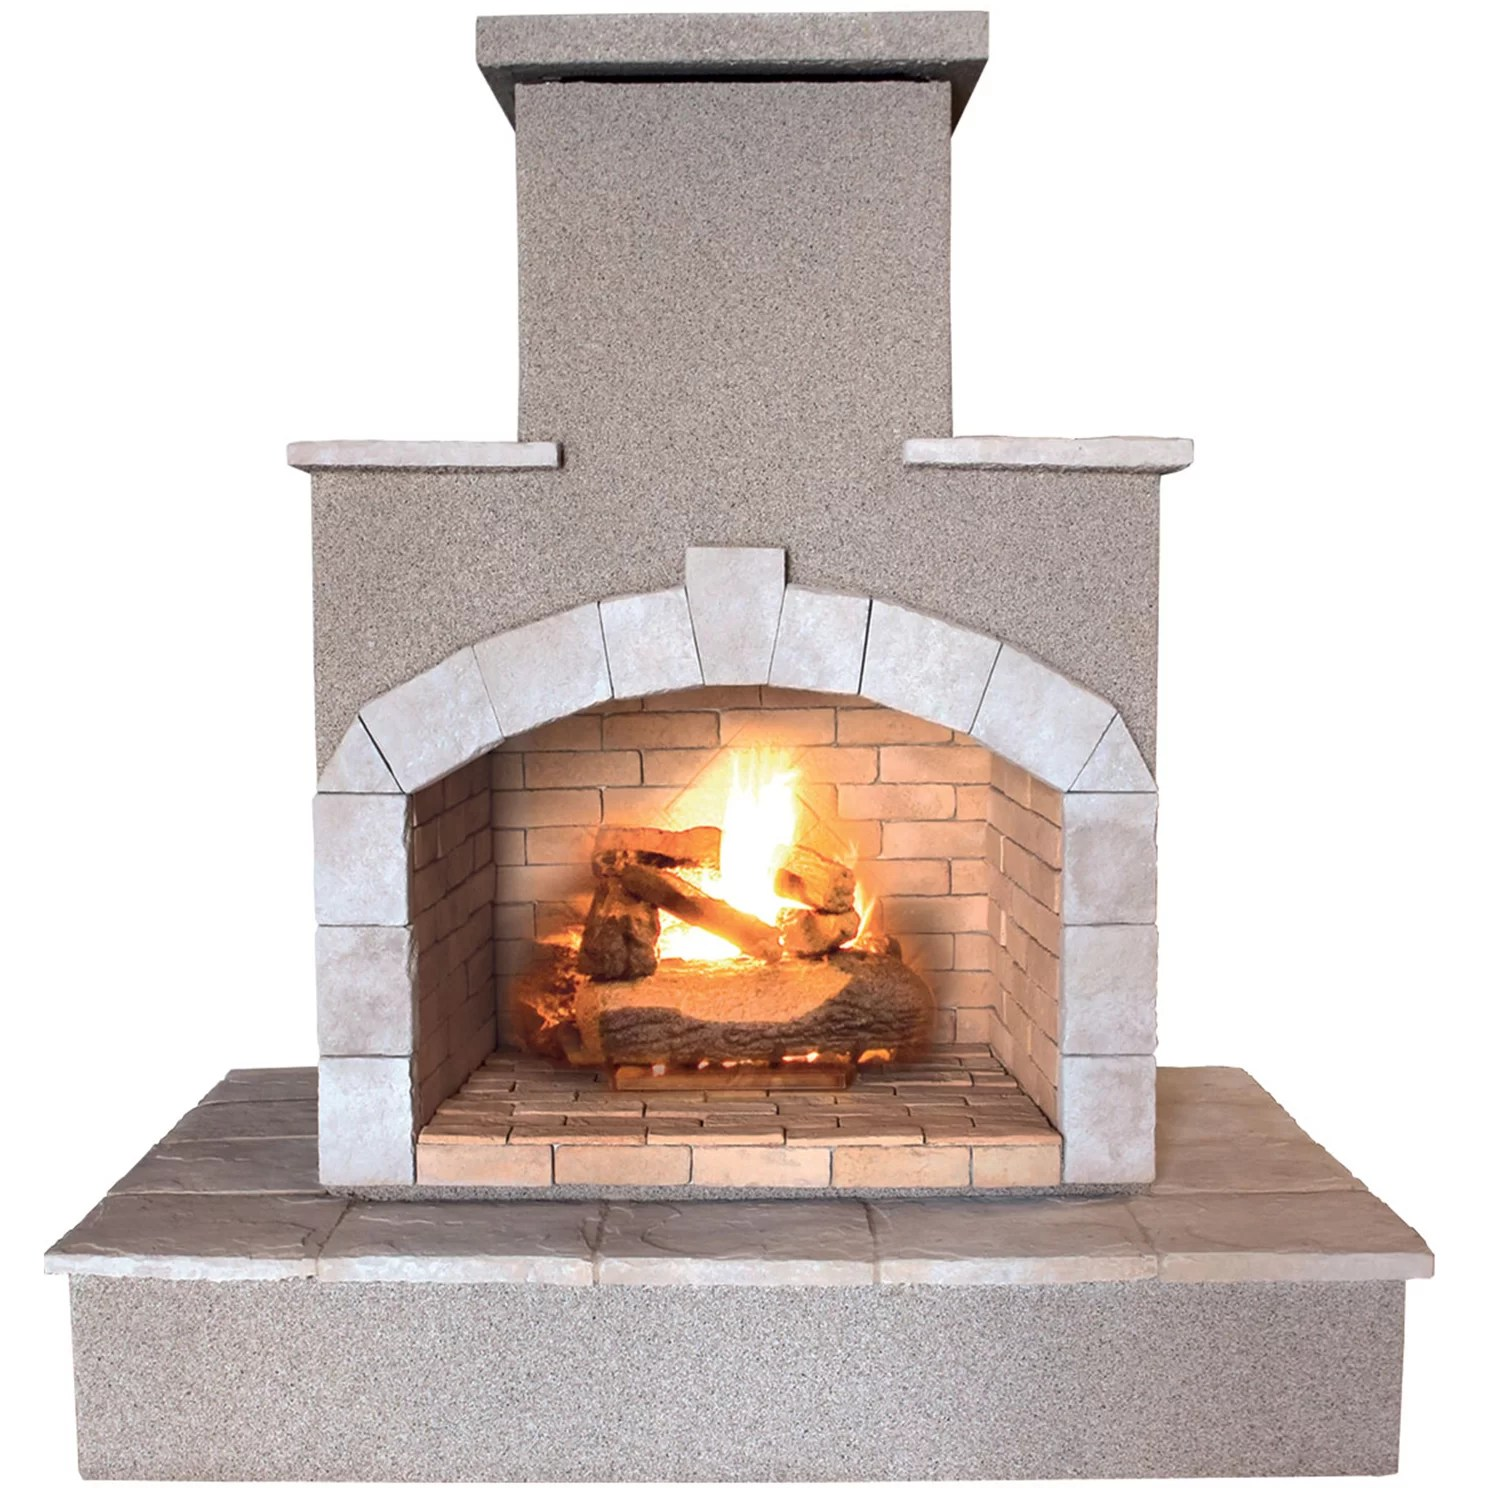 Propane Fireplace Cleaning Calflame Propane Gas Outdoor Fireplace And Reviews Wayfair